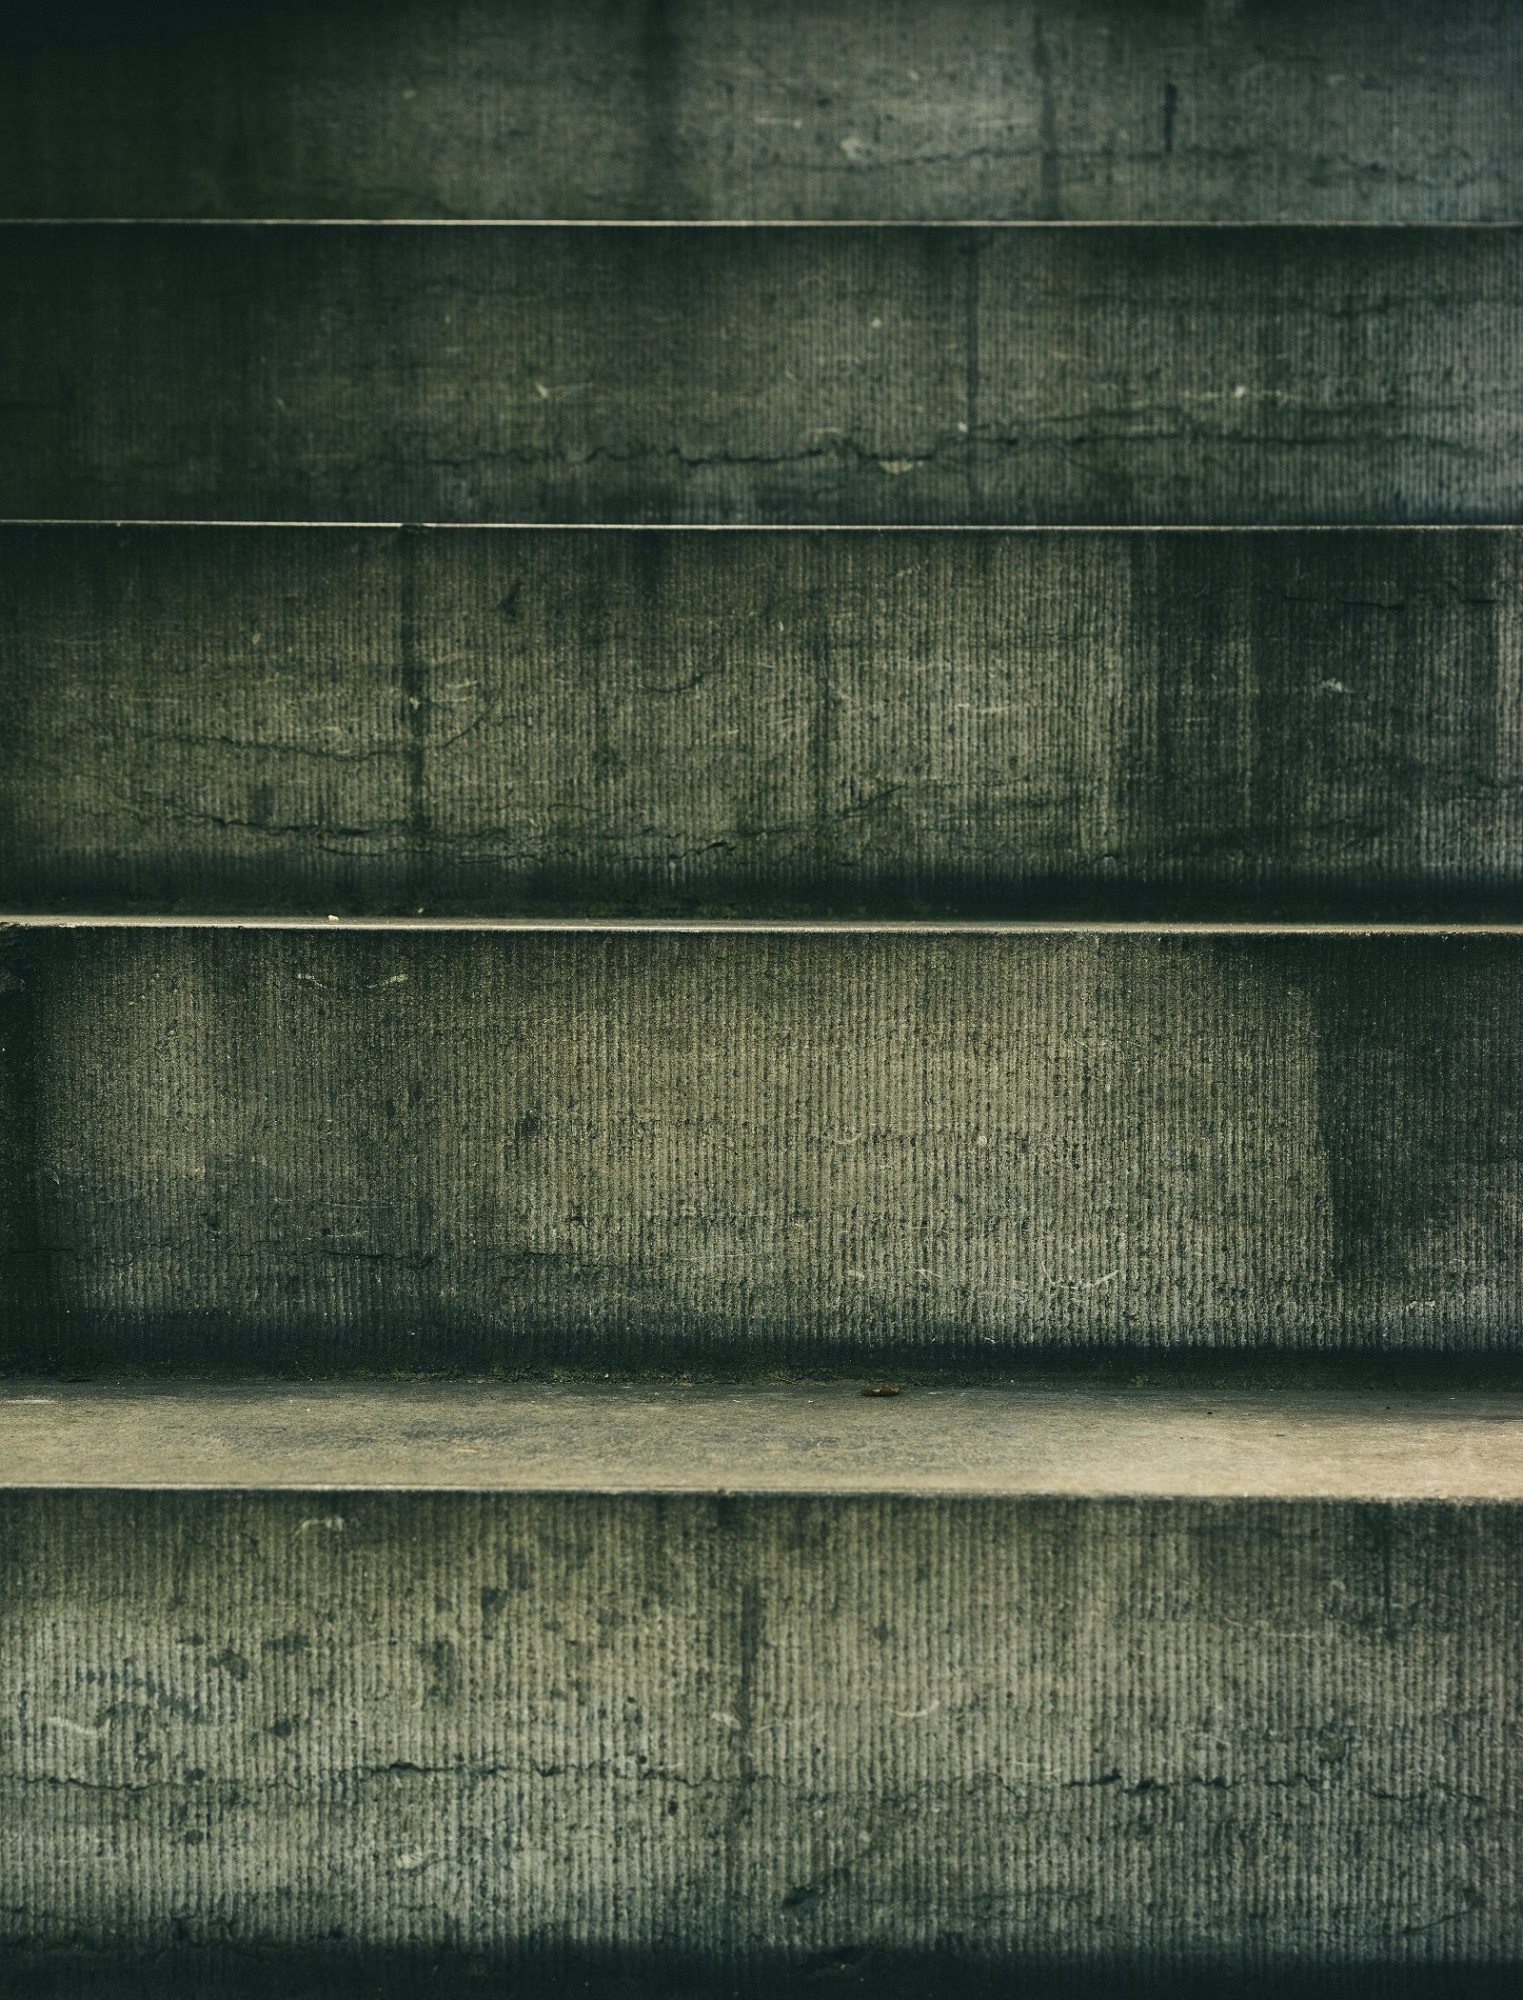 A photo of 5 concrete steps